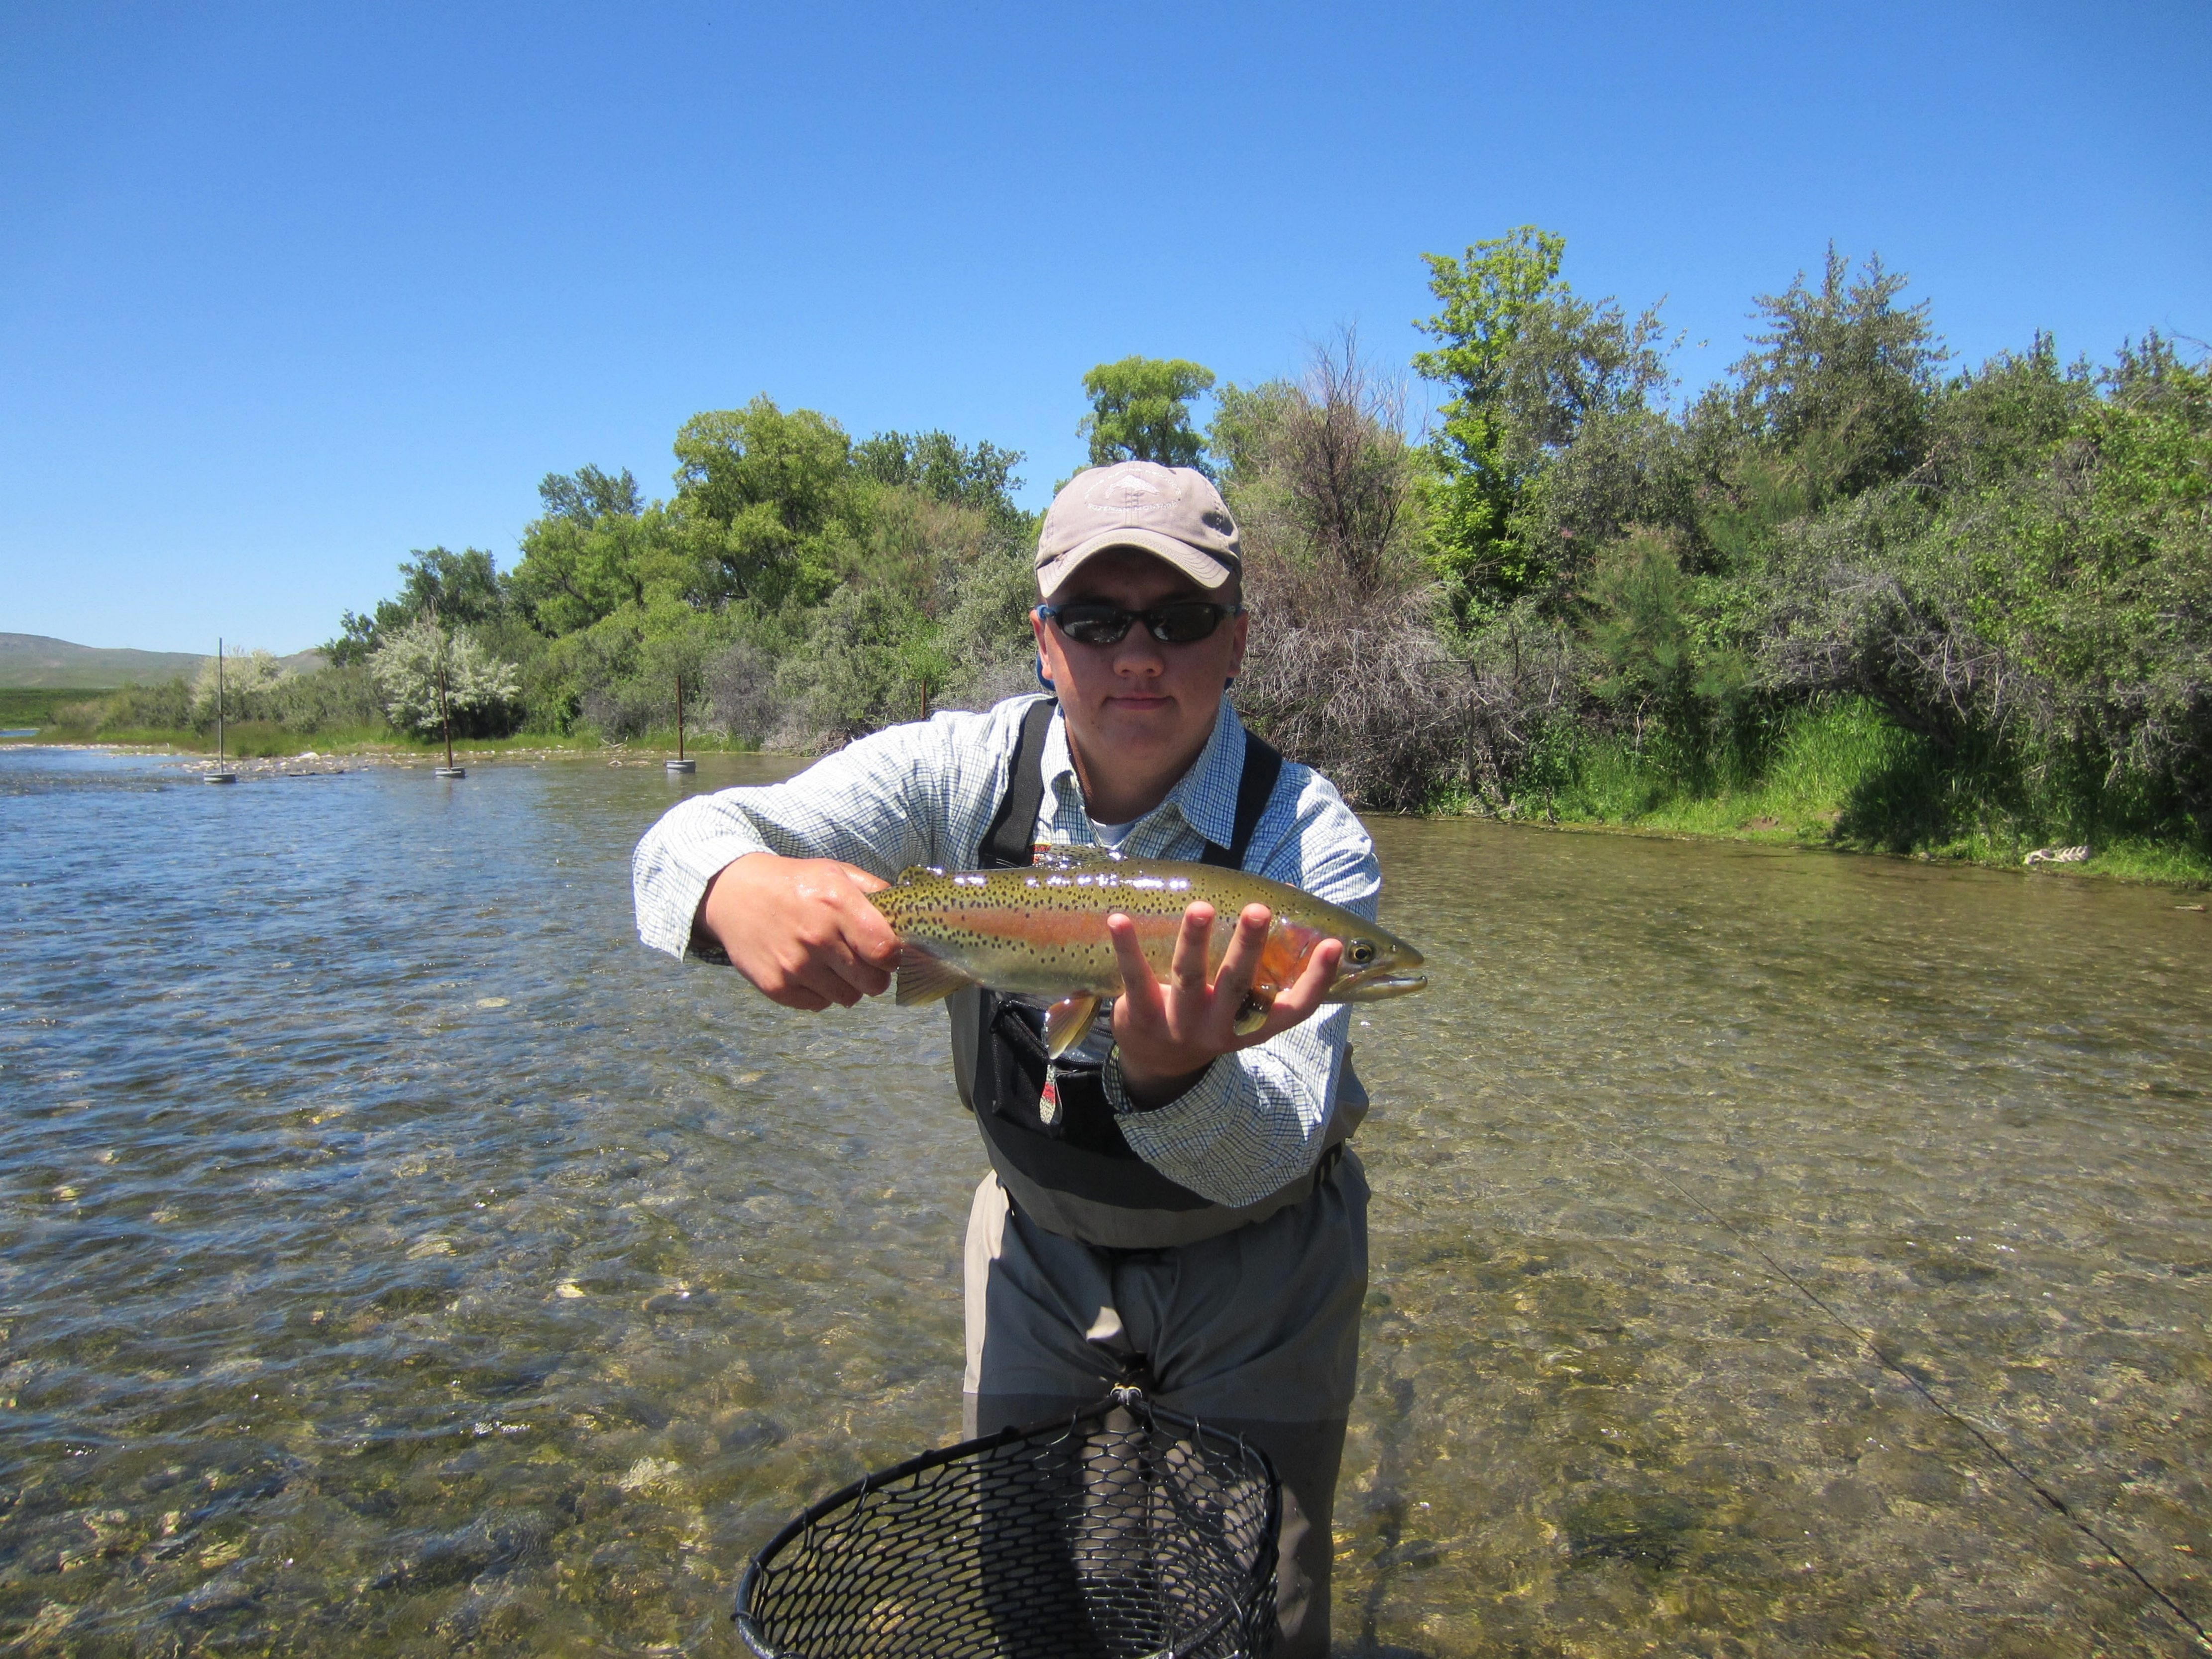 Adam Slavinski with a nice rainbow trout that went for a fly in Montana's Bighorn River.